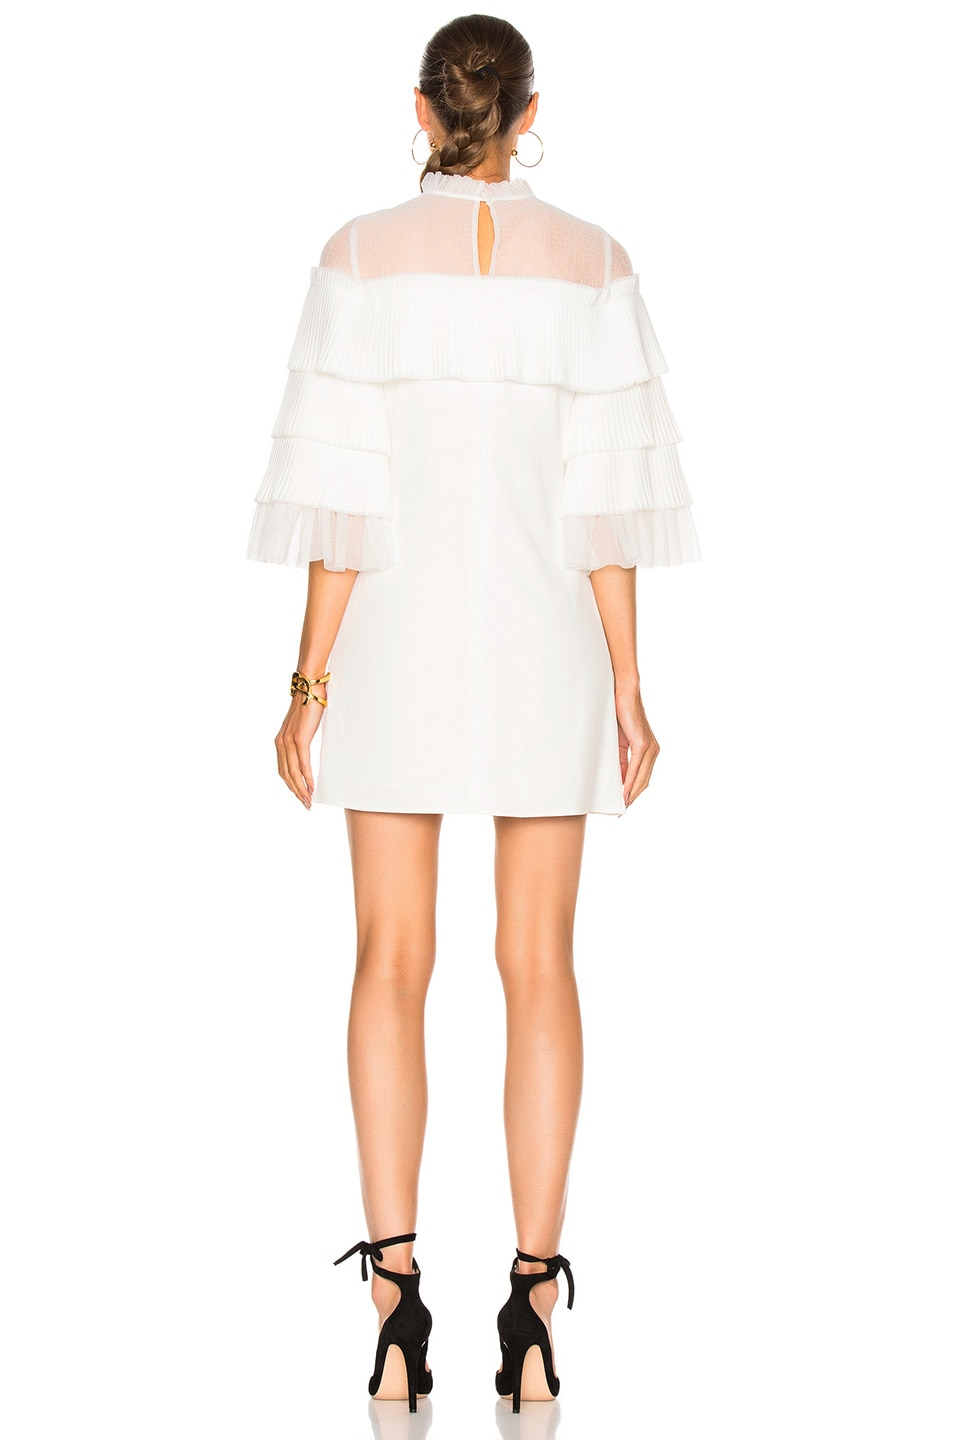 529e56791b24 Image 4 of Alexis Pierre Dress in Off White